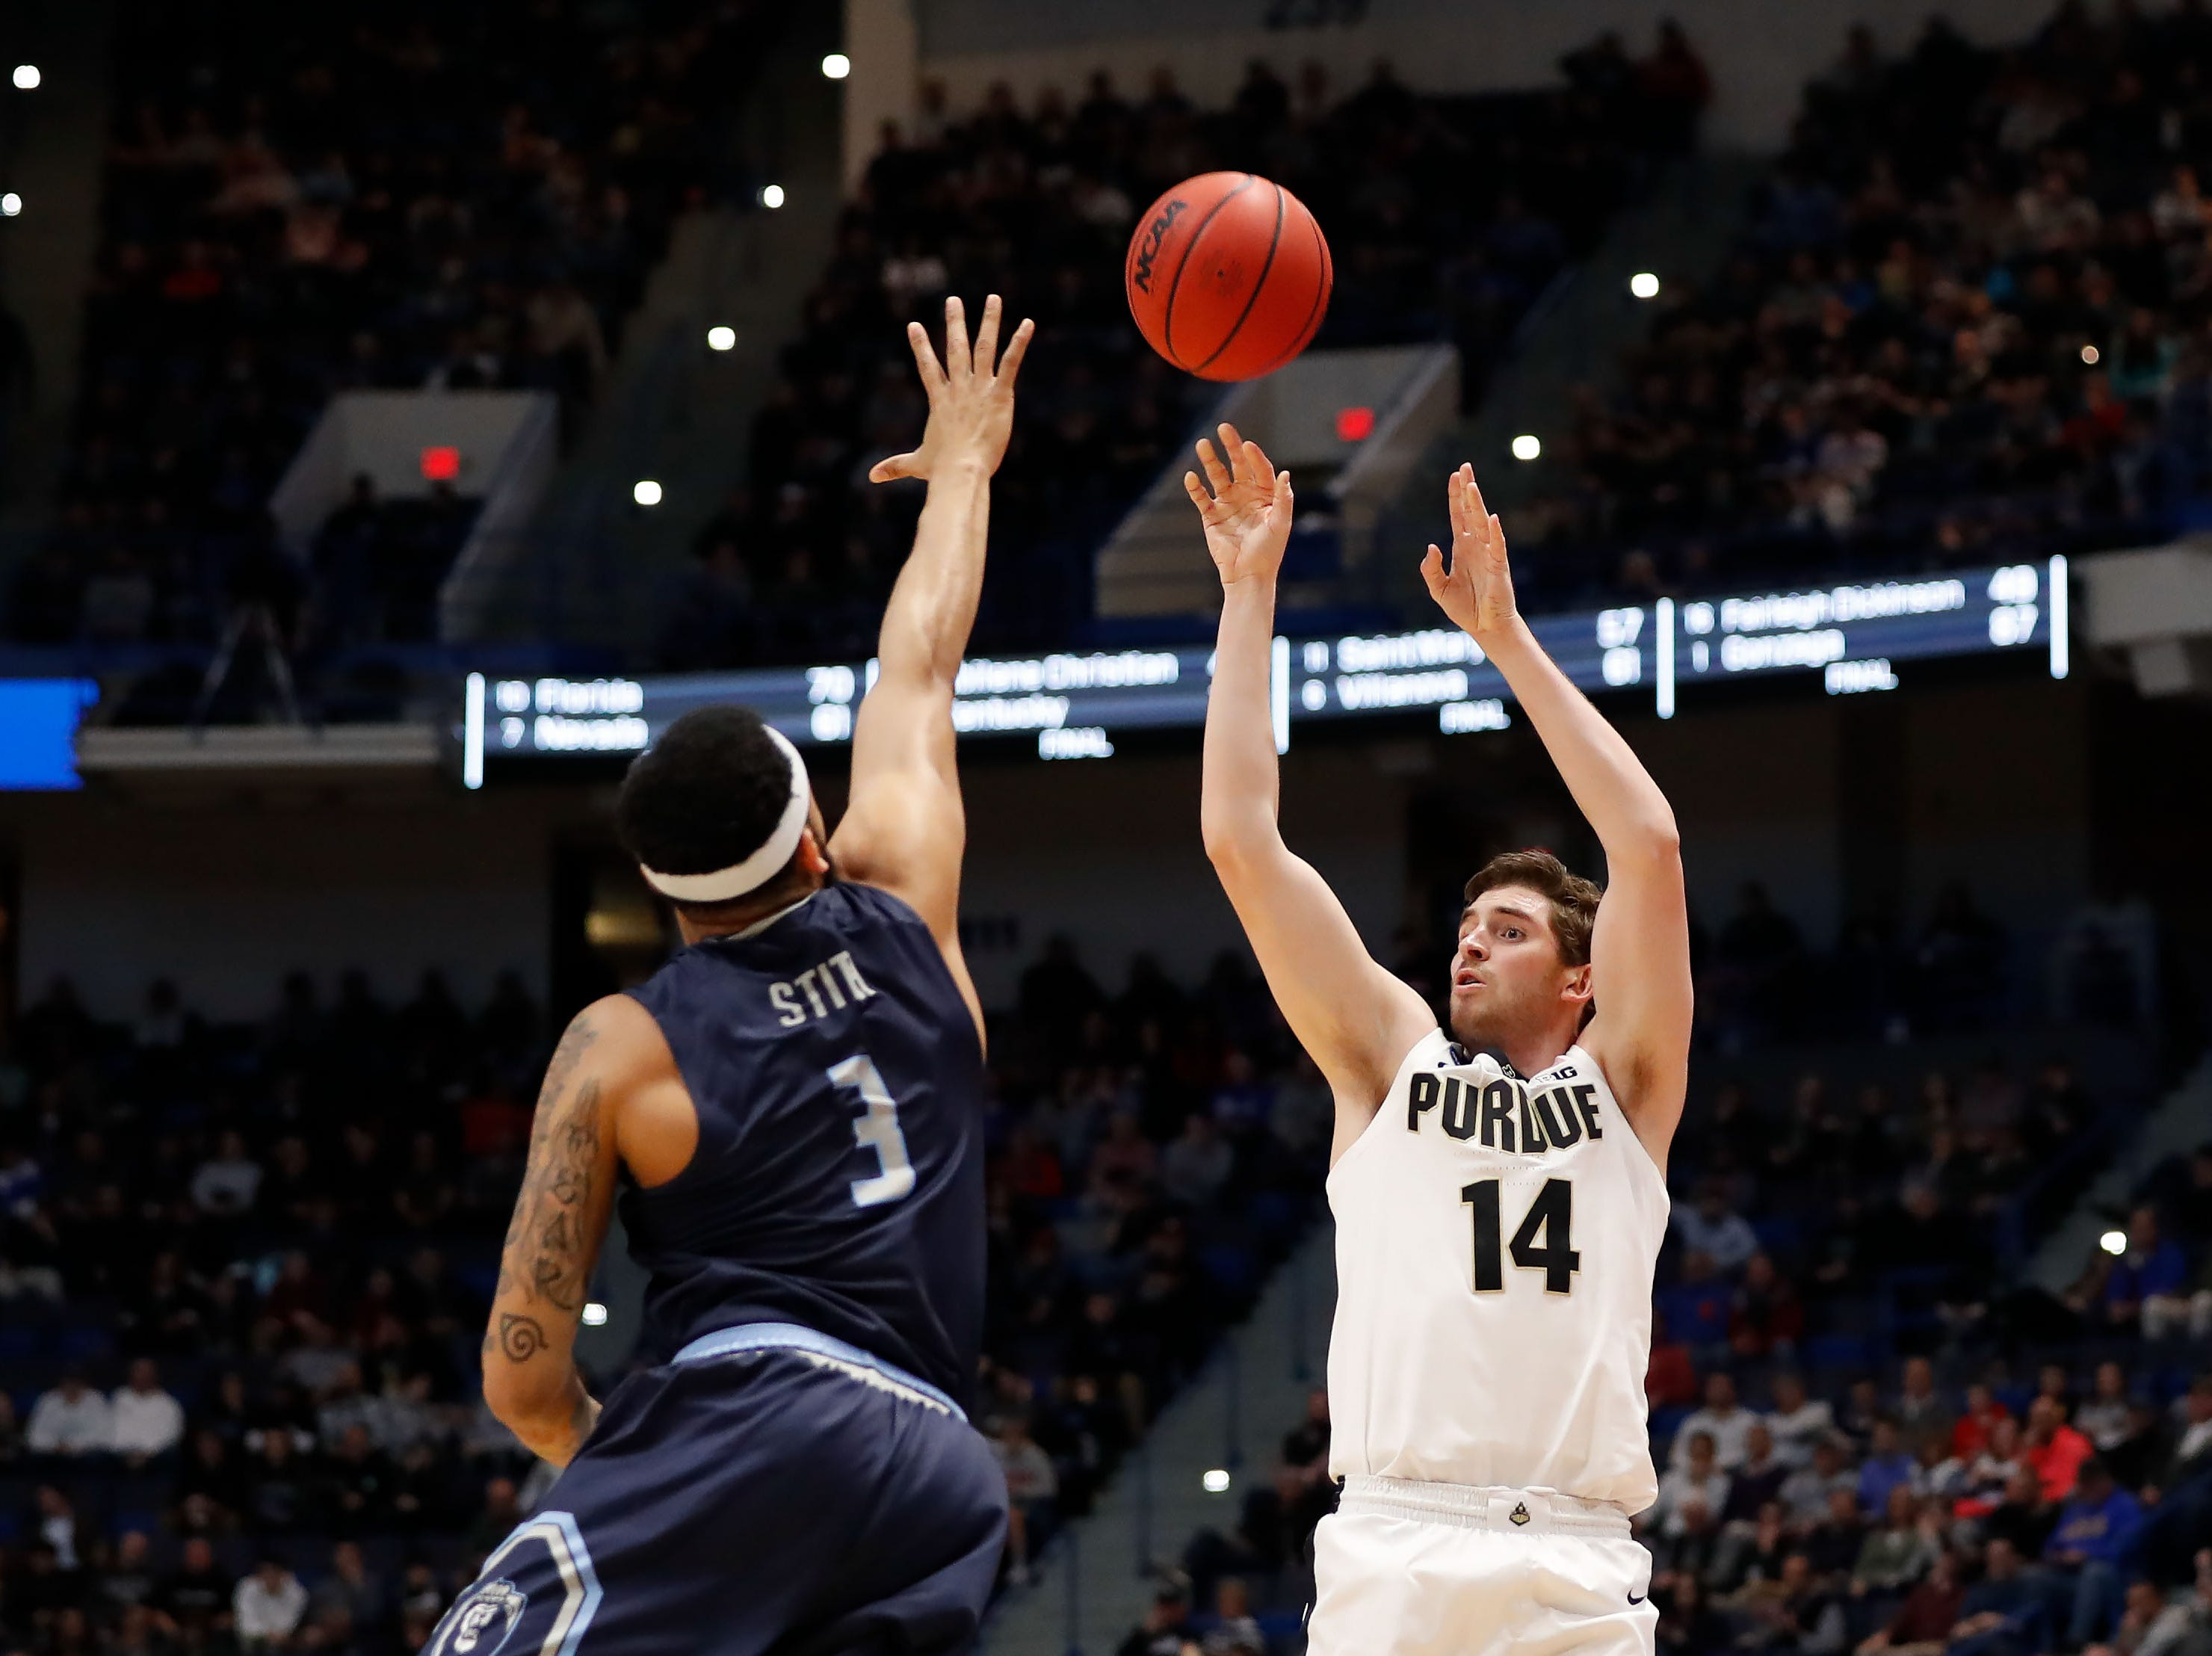 Mar 21, 2019; Hartford, CT, USA; Purdue Boilermakers guard Ryan Cline (14) attempts a shot over Old Dominion Monarchs guard B.J. Stith (3) during the first half of a game in the first round of the 2019 NCAA Tournament at XL Center. Mandatory Credit: David Butler II-USA TODAY Sports